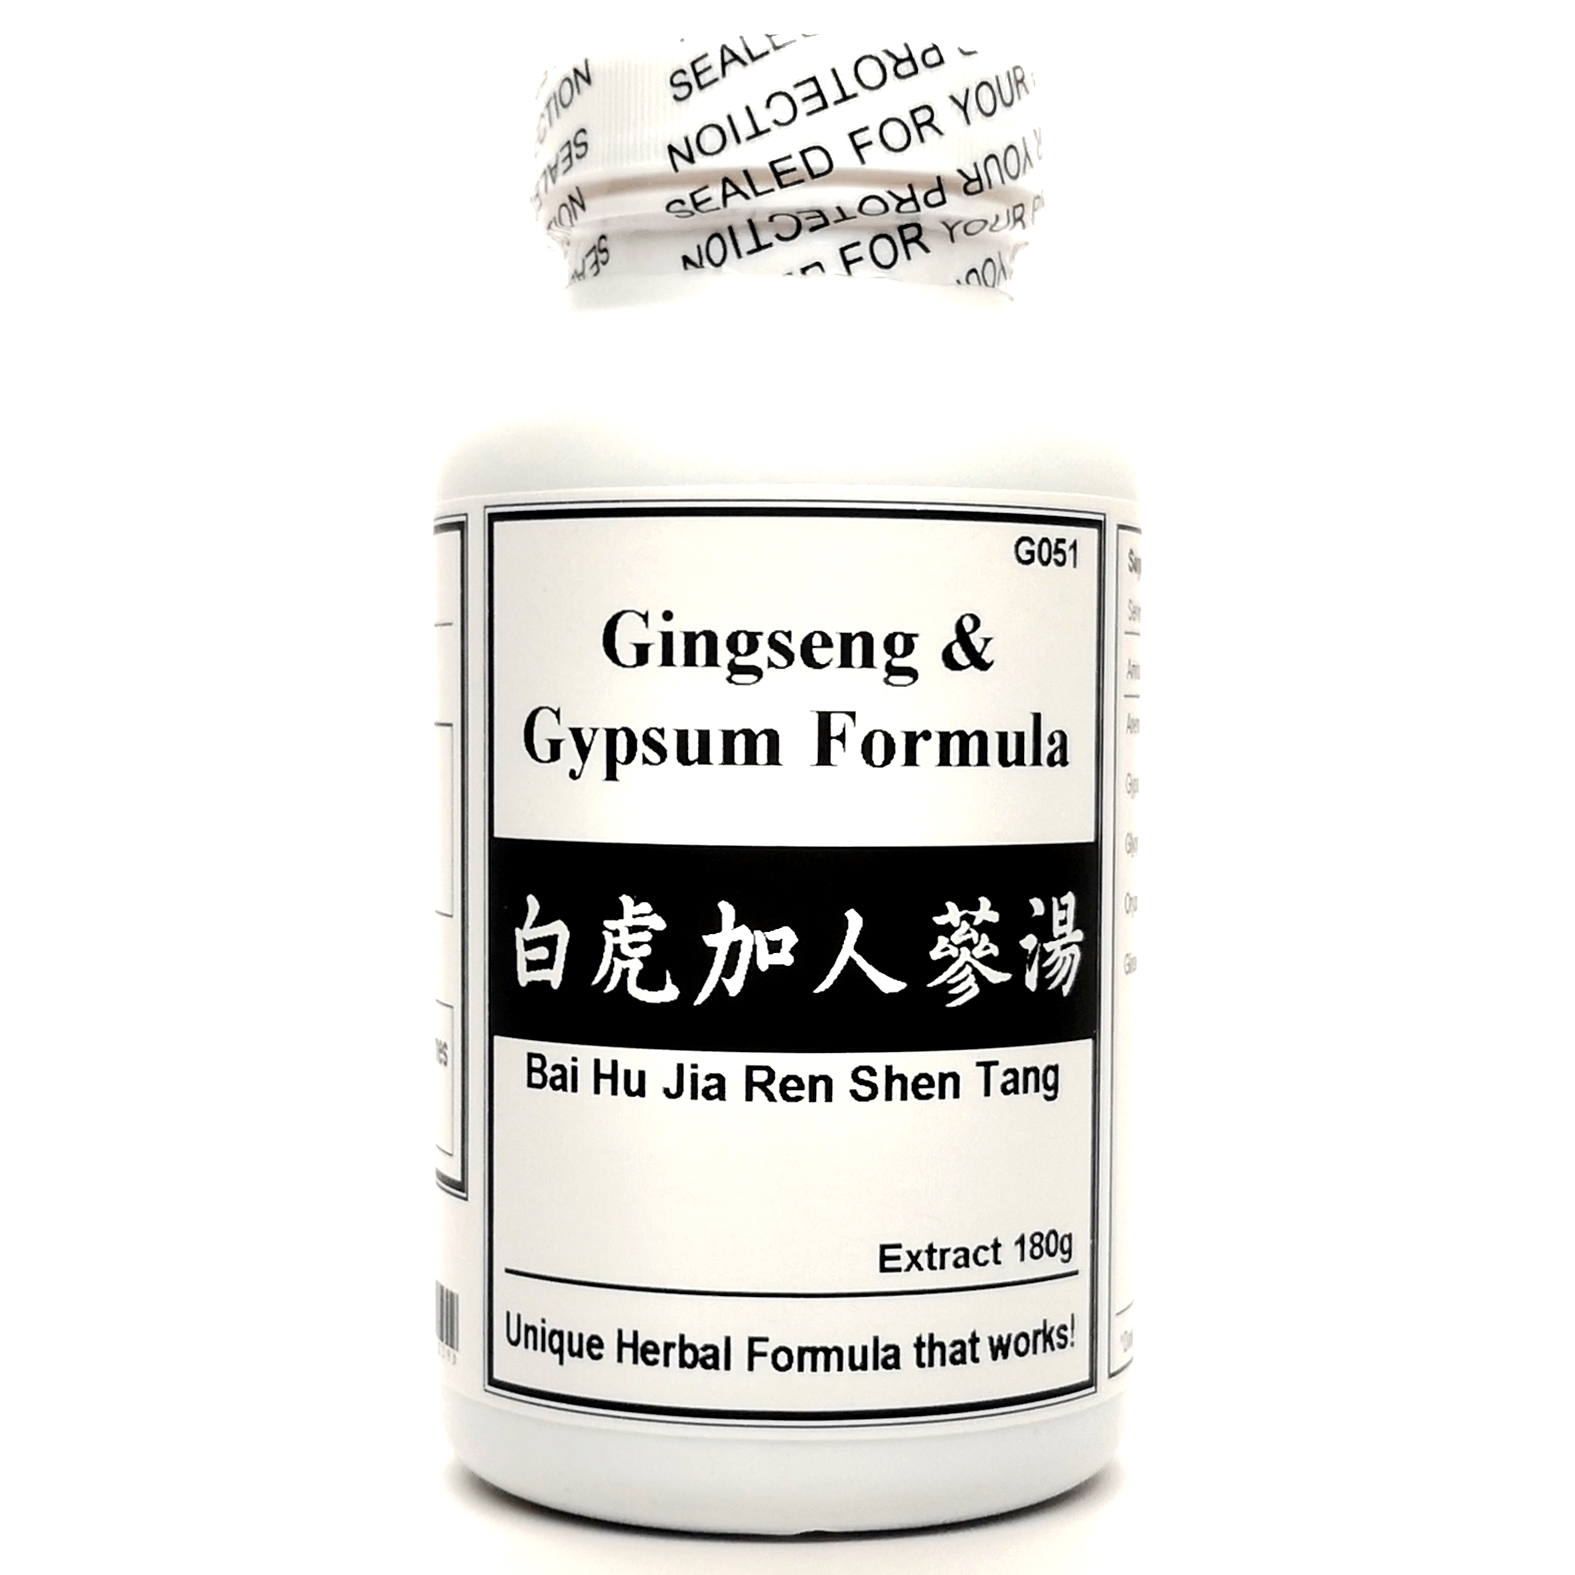 Gingseng &  Gypsum Formula Extract Powder Instant Herbal Tea 180g  (Bai Hu Jia Ren Shen Tang)